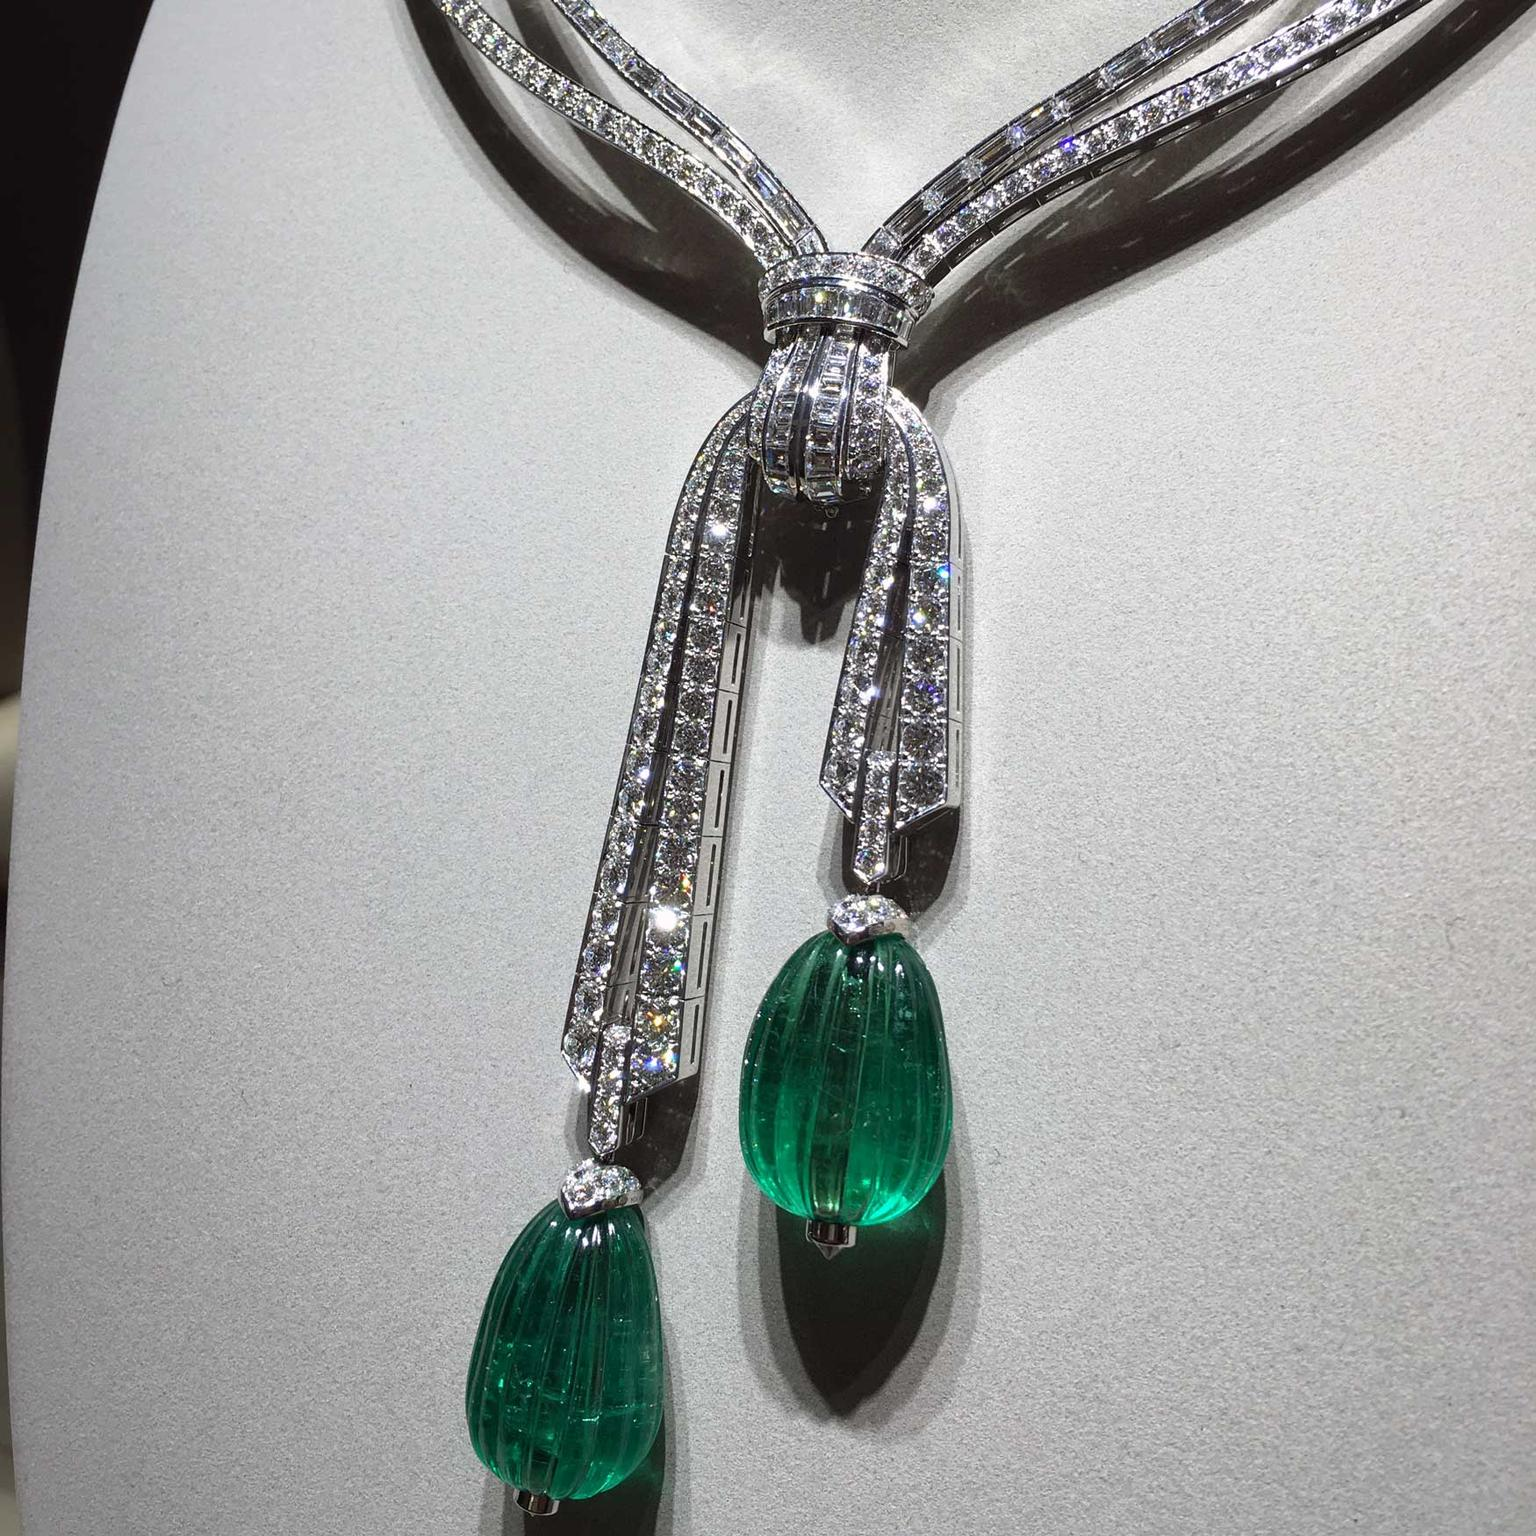 Van Cleef & Arpels Grand Opus carved emerald necklace